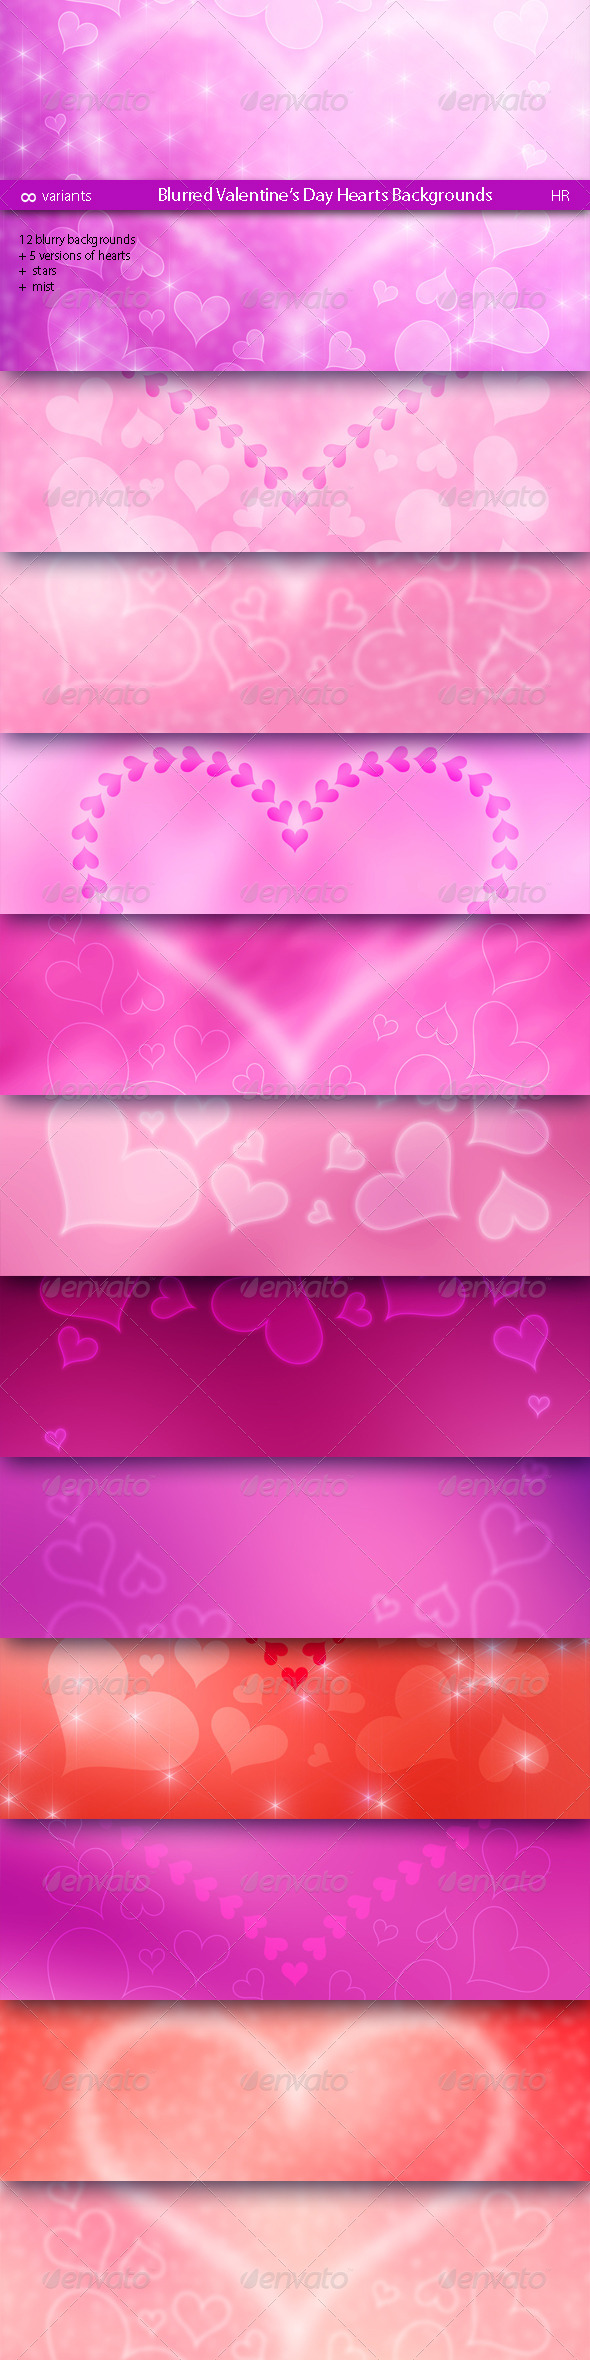 GraphicRiver Blurred Valentine's Day Hearts Backgrounds 6618578